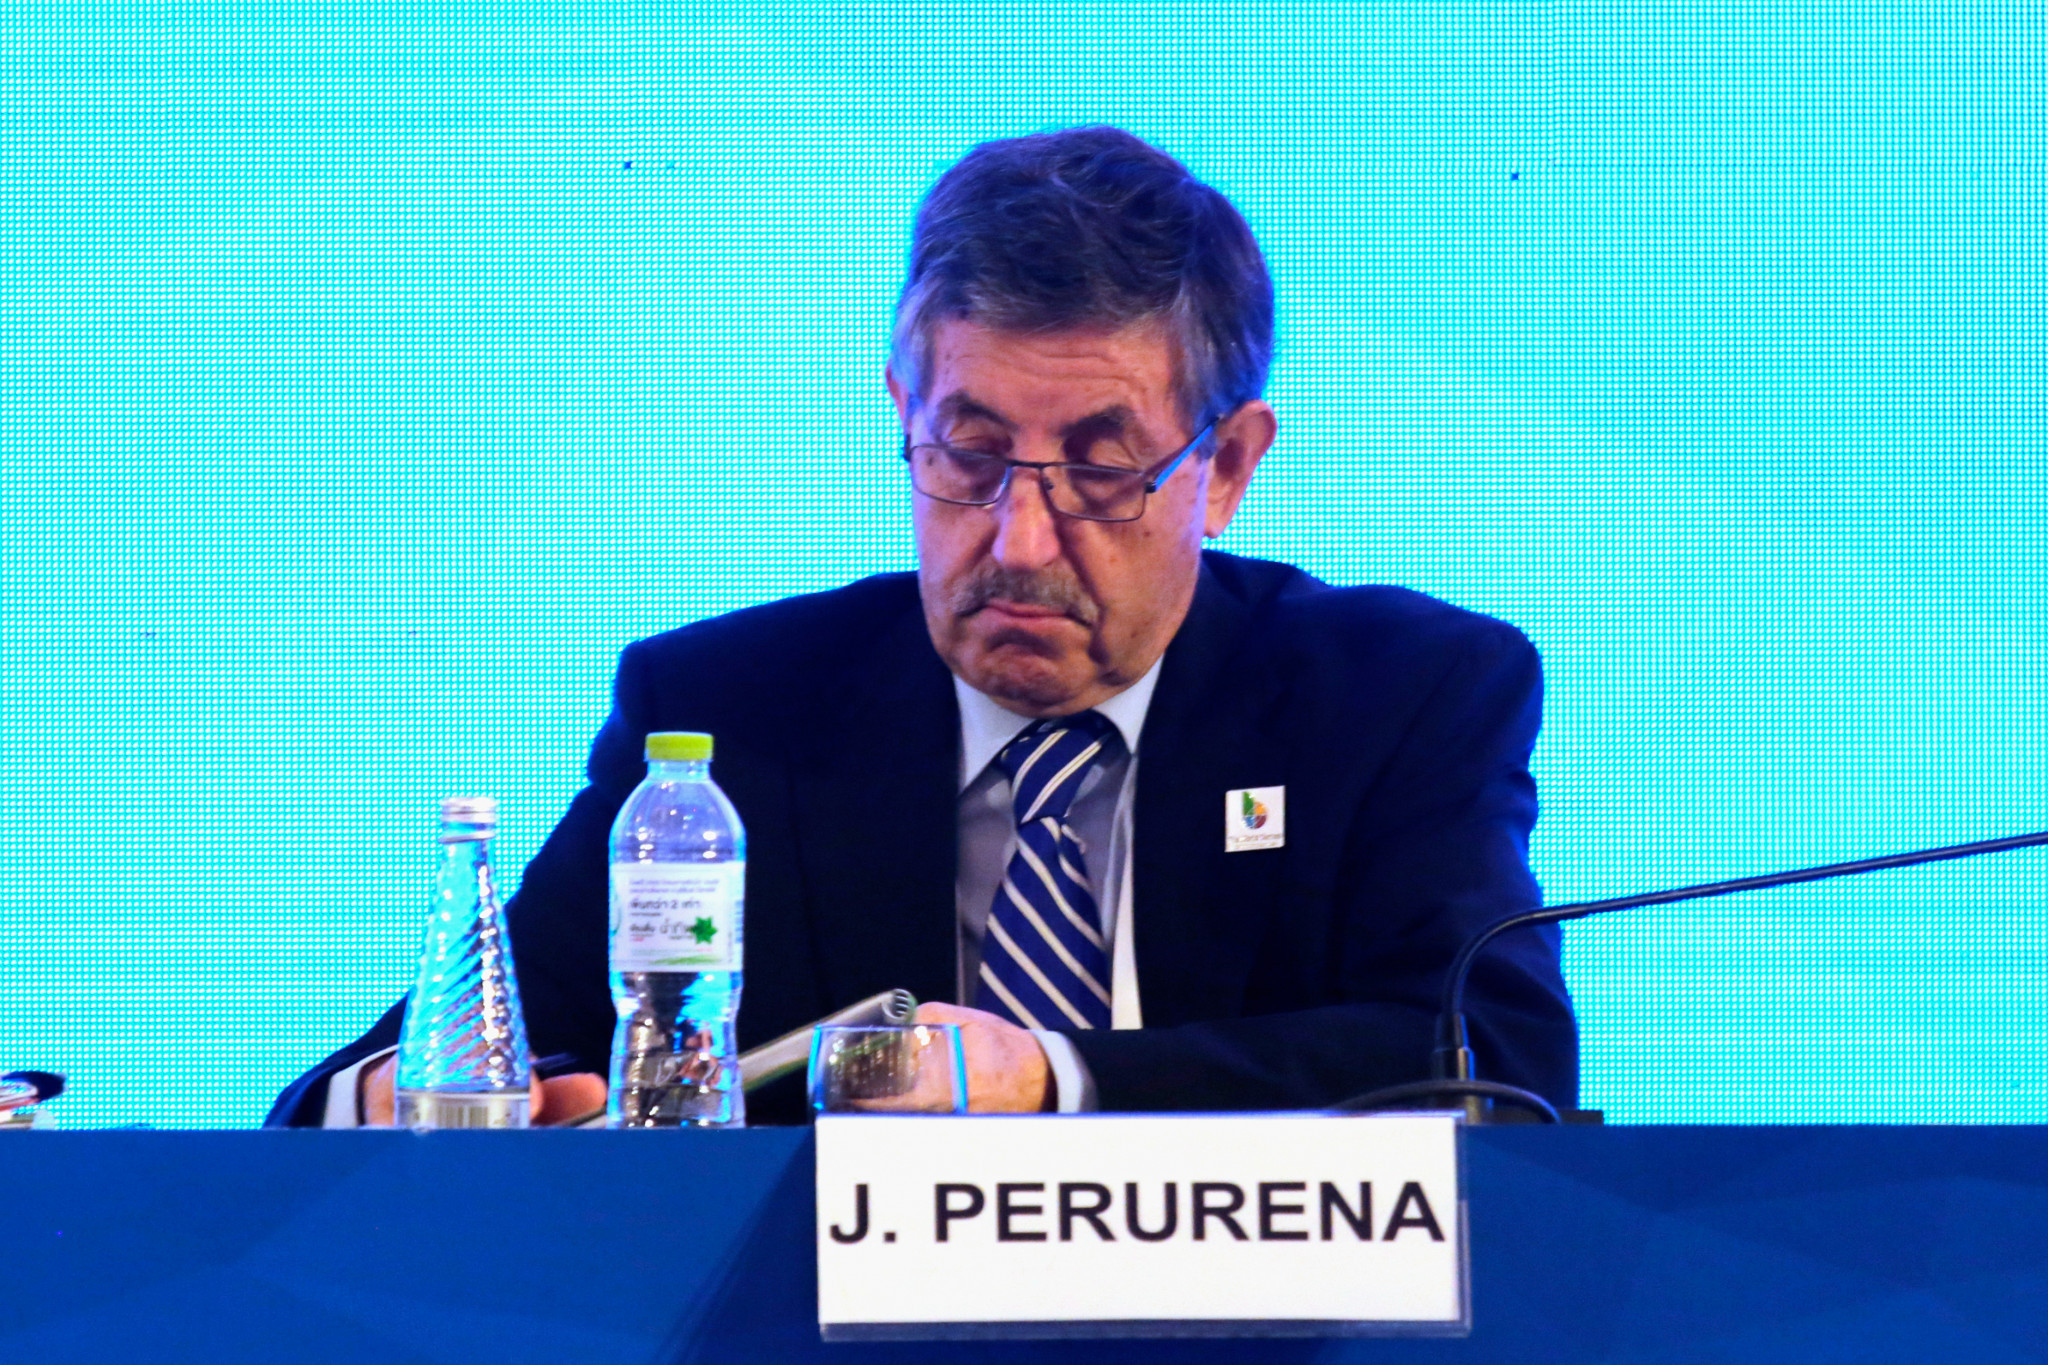 Jose Perurena claims the World Championships will show the ICF's commitment to stand-up paddle ©Getty Images